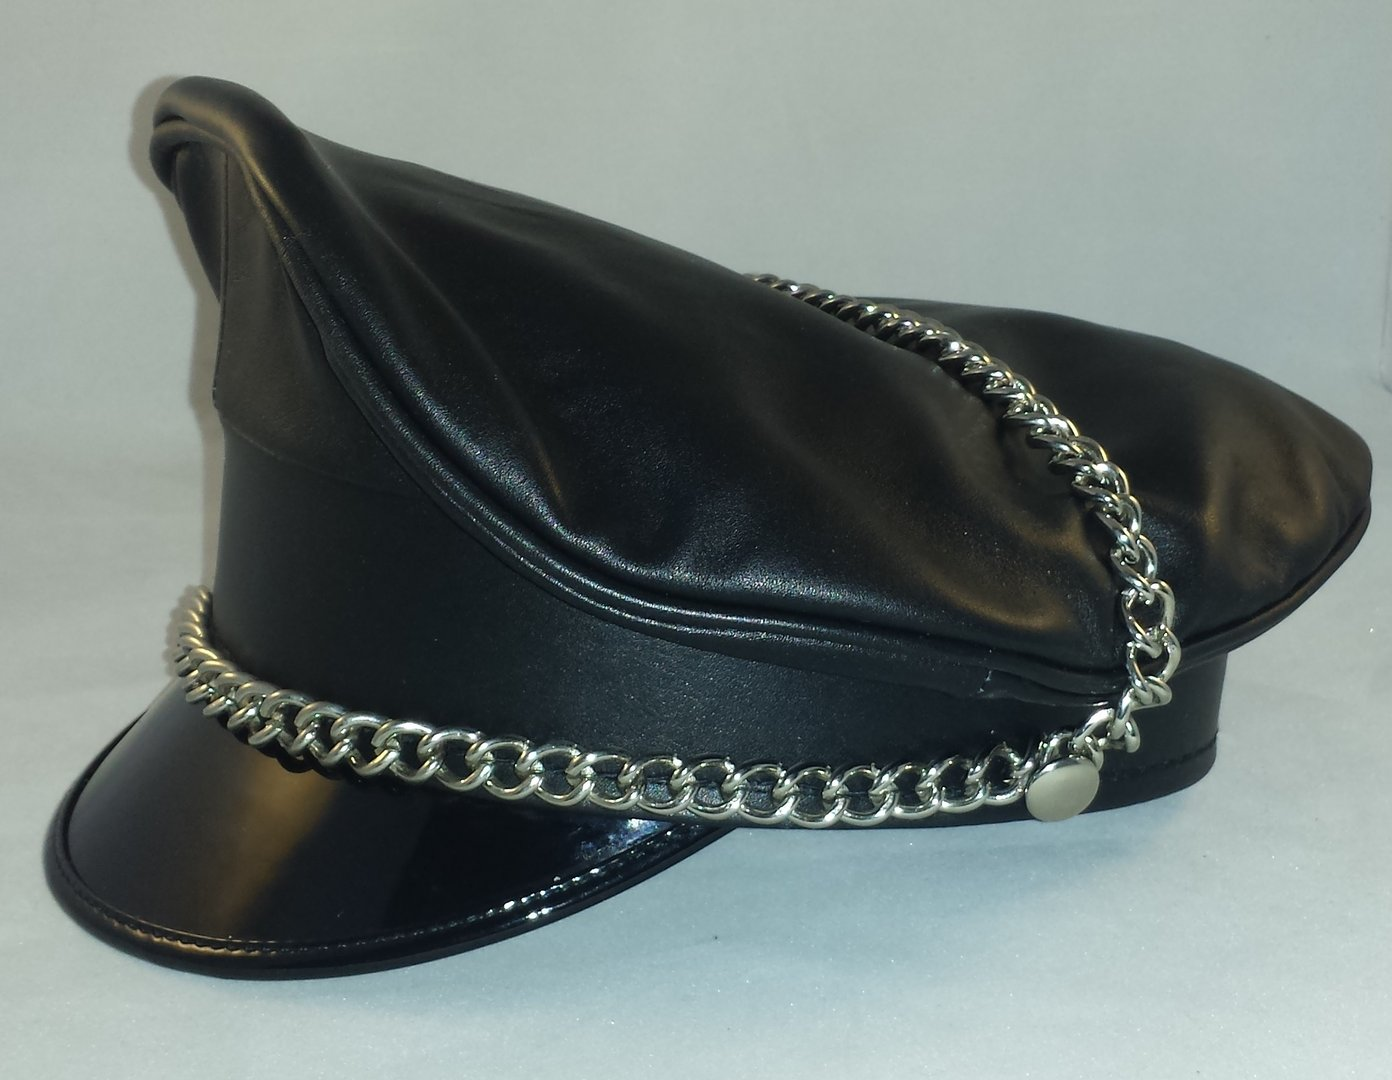 Leather Muir cap with chain Black - Awanstar Leather Fashion 31d034be5adf